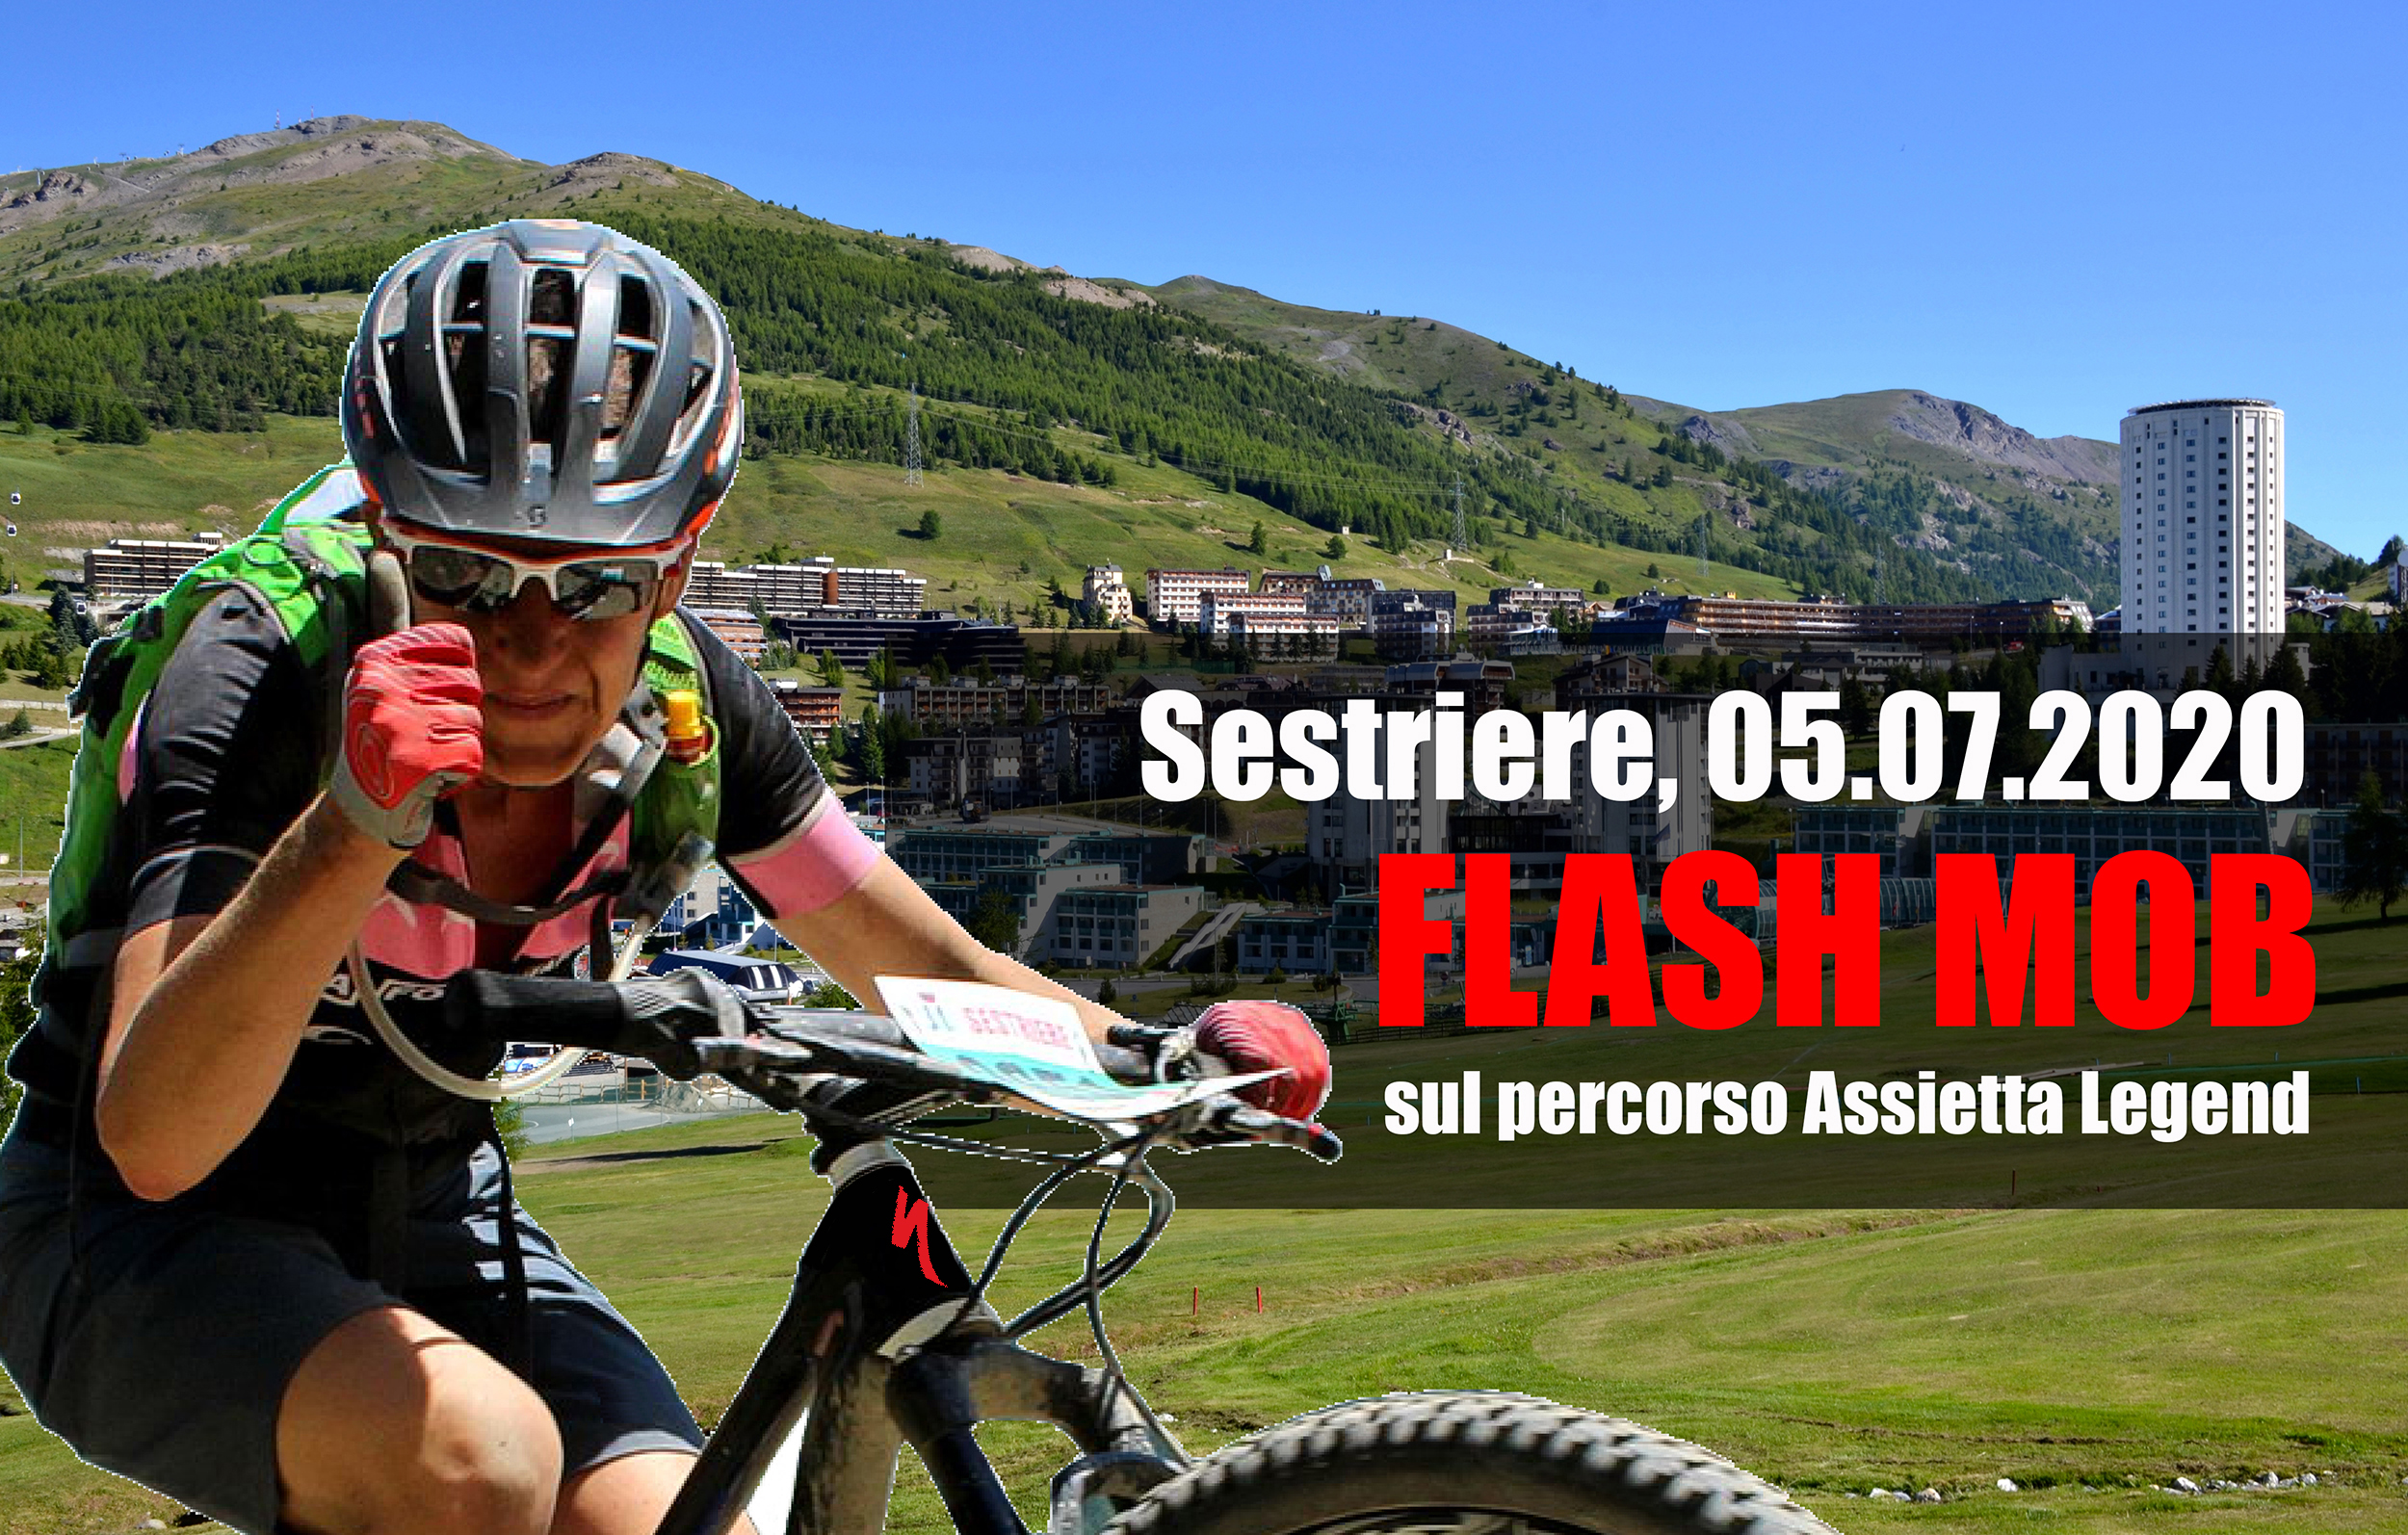 FLASH MOB SUL PERCORSO DELL'ASSIETTA LEGEND!